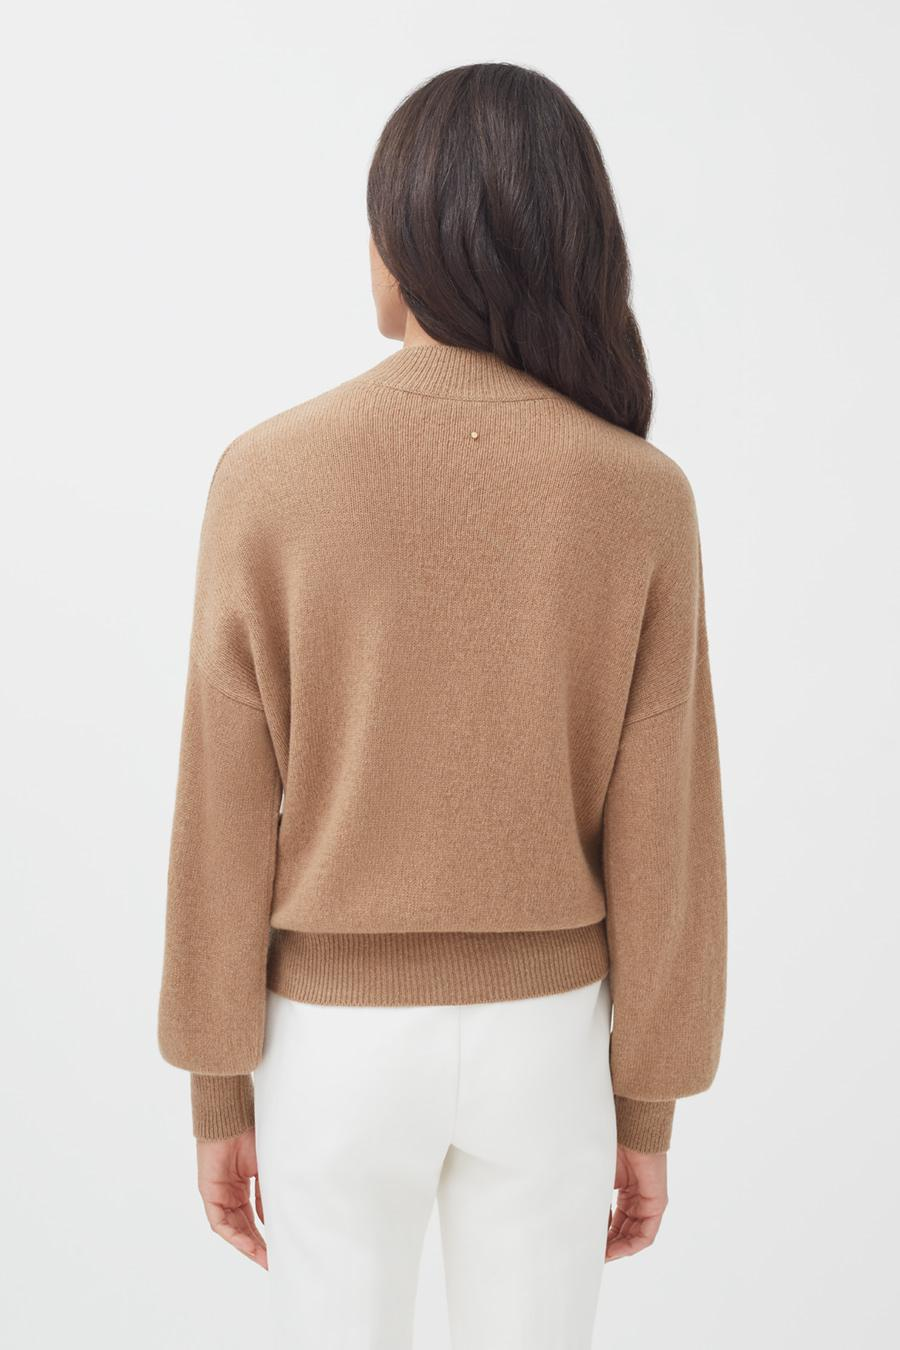 Women's Recycled Mock Neck Sweater in Camel | Size: 2